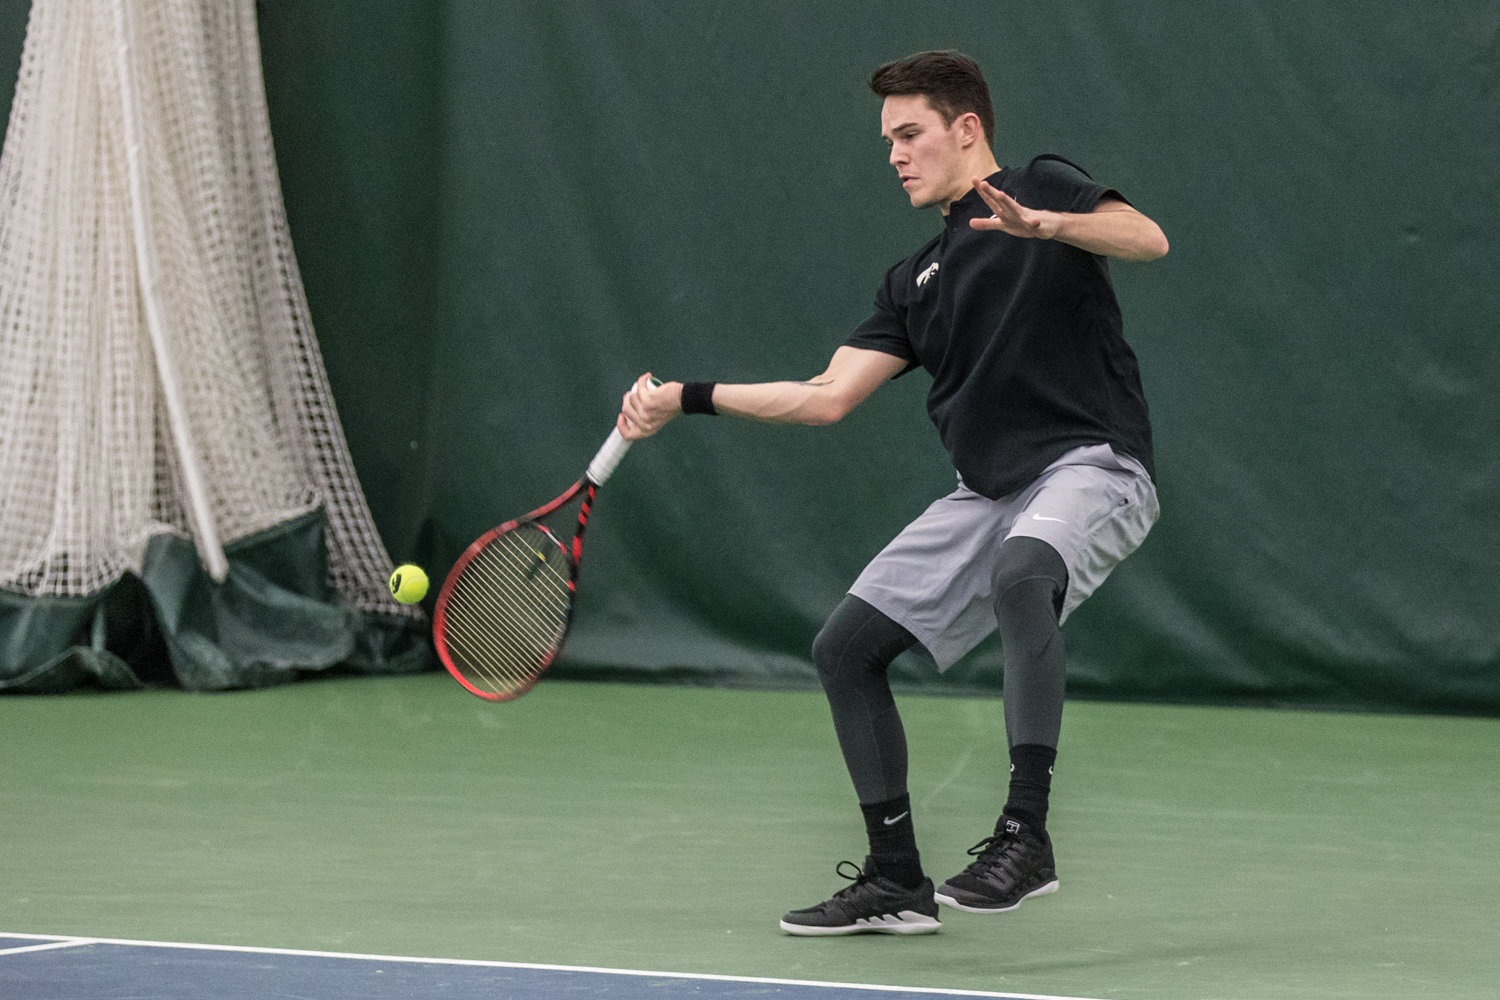 Iowa%27s+Jonas+Larsen+hits+a+forehand+during+a+men%27s+tennis+match+between+Iowa+and+East+Tennessee+State+on+Friday%2C+January+25%2C+2019.+The+Hawkeyes+defeated+the+Buccaneers%2C+4-3.